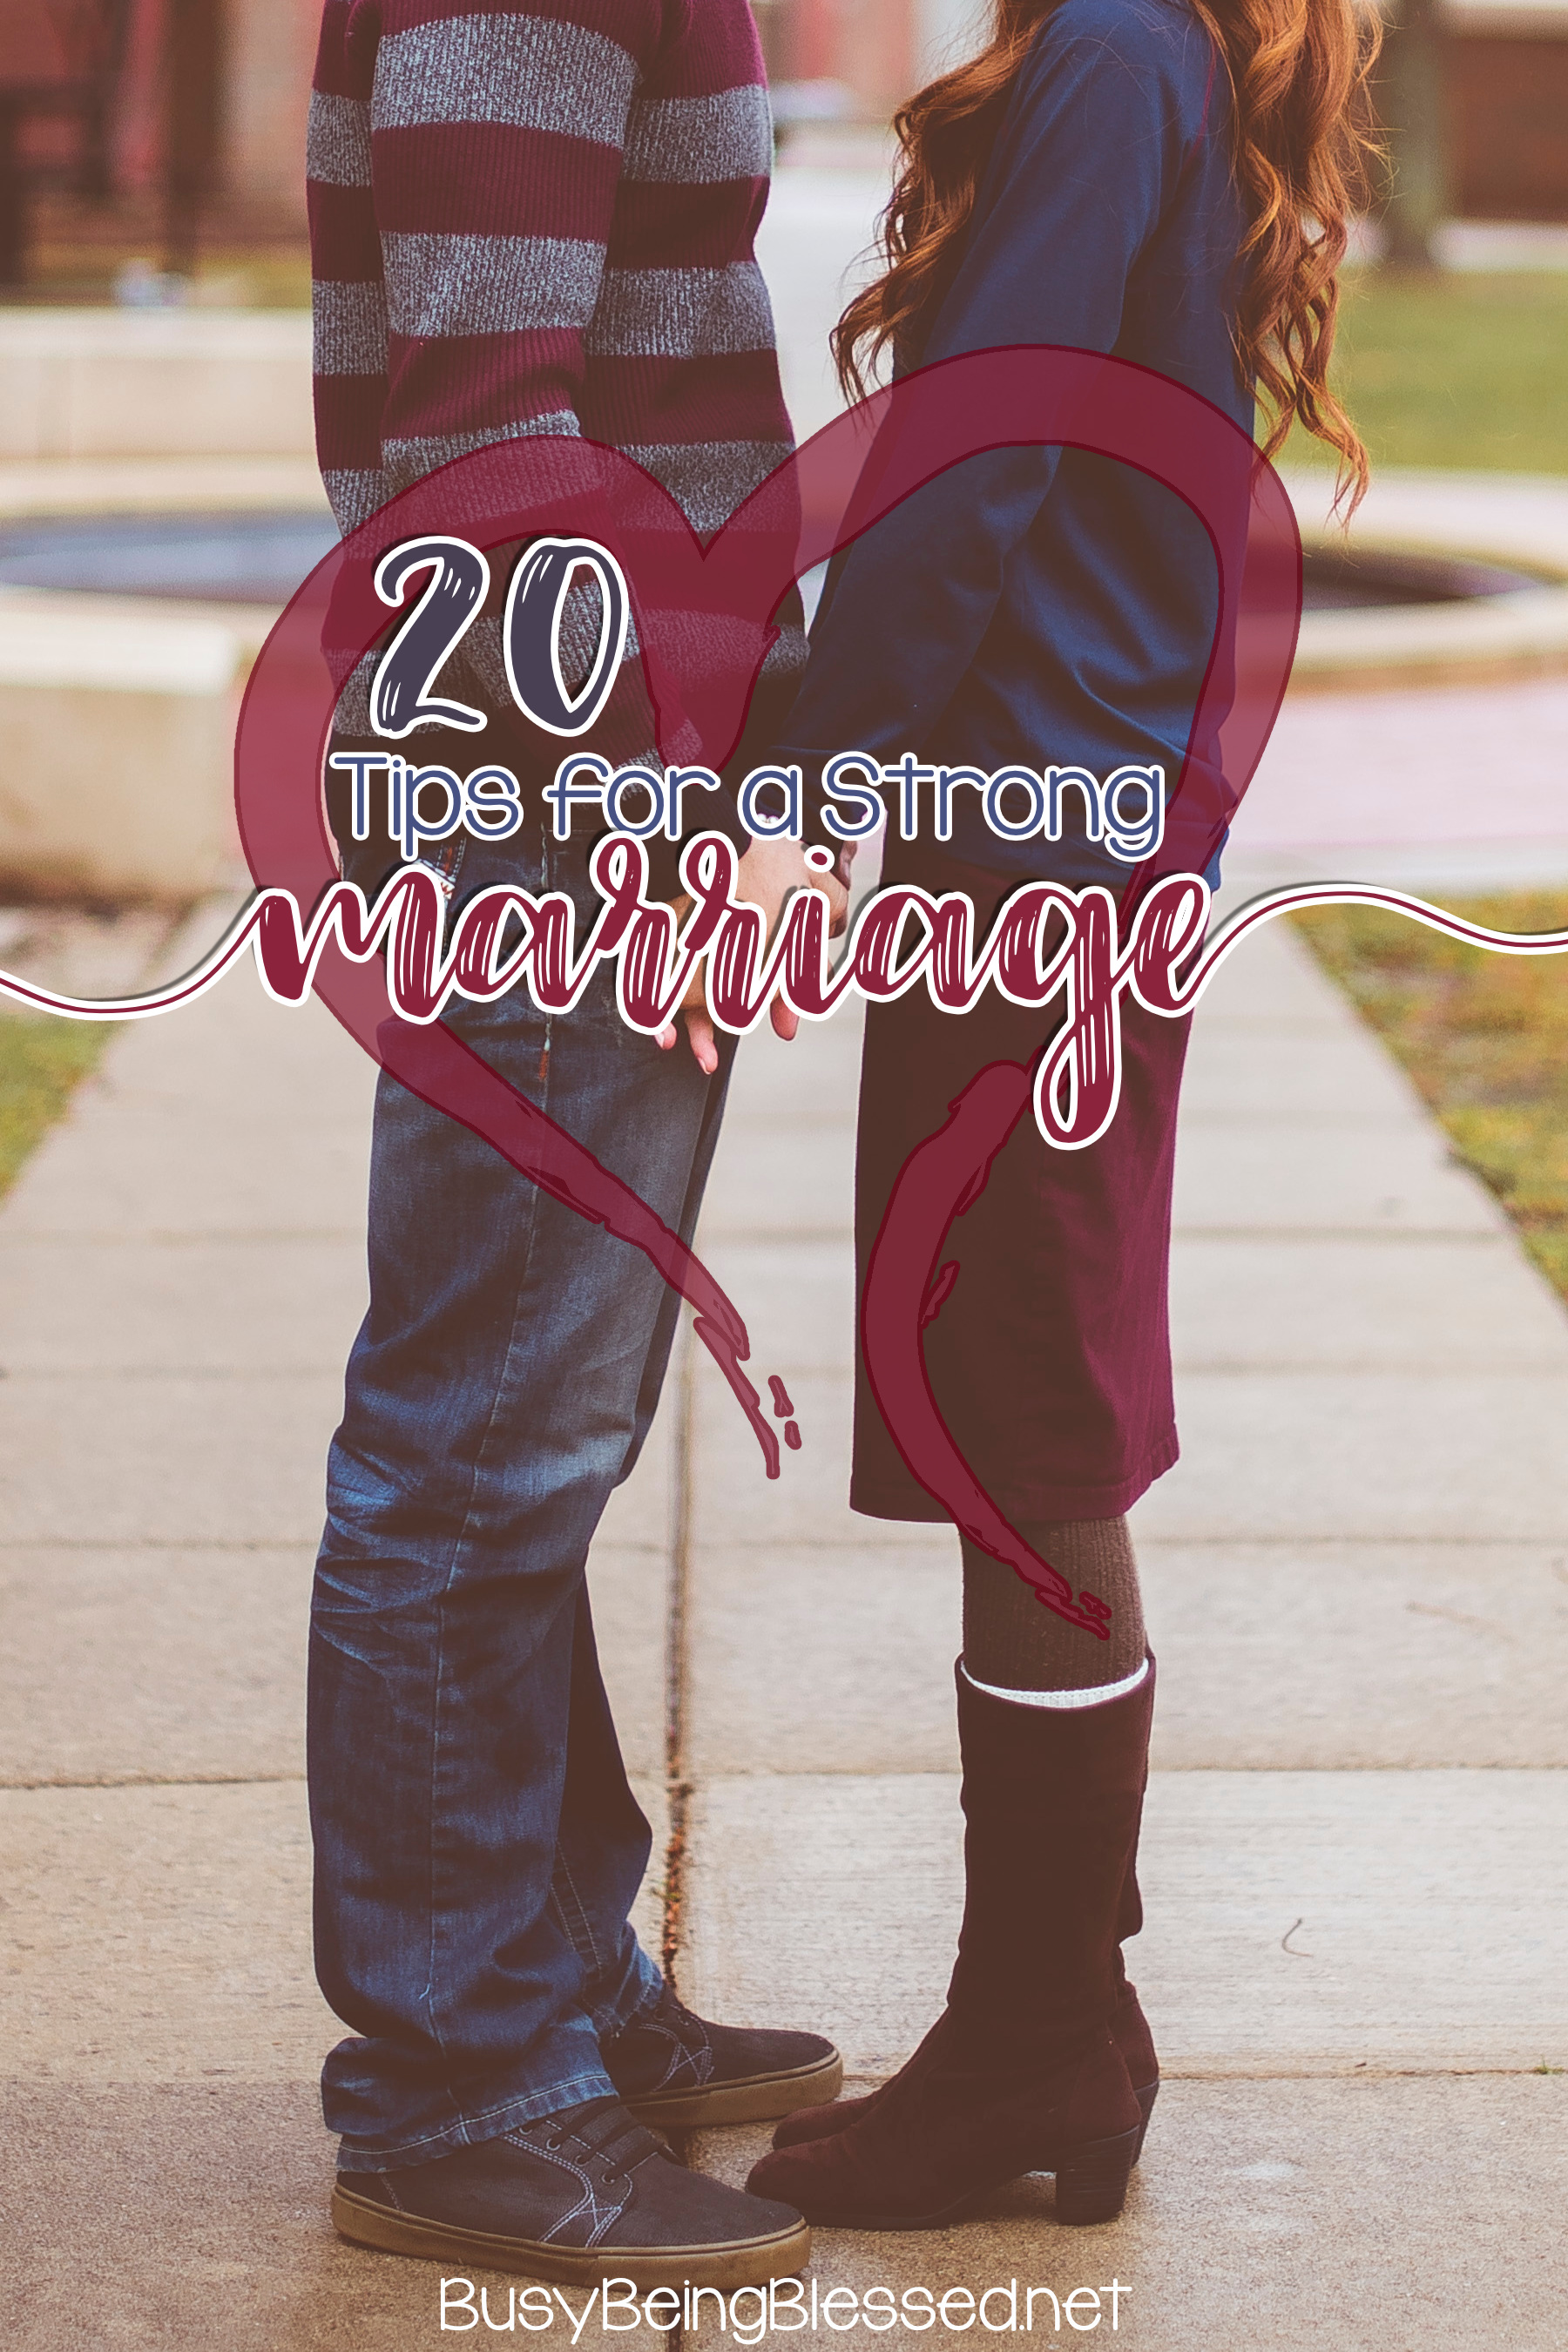 20 Tips for a Strong Marriage - I find it so hard to believe that I've been married 20 years today, and we had our first date 21 years ago today! Marriage is a funny thing, isn't it? Sometimes, I feel like we're still newlyweds. Other times, I feel like a wrinkled old couple, still in love and teasing each other.